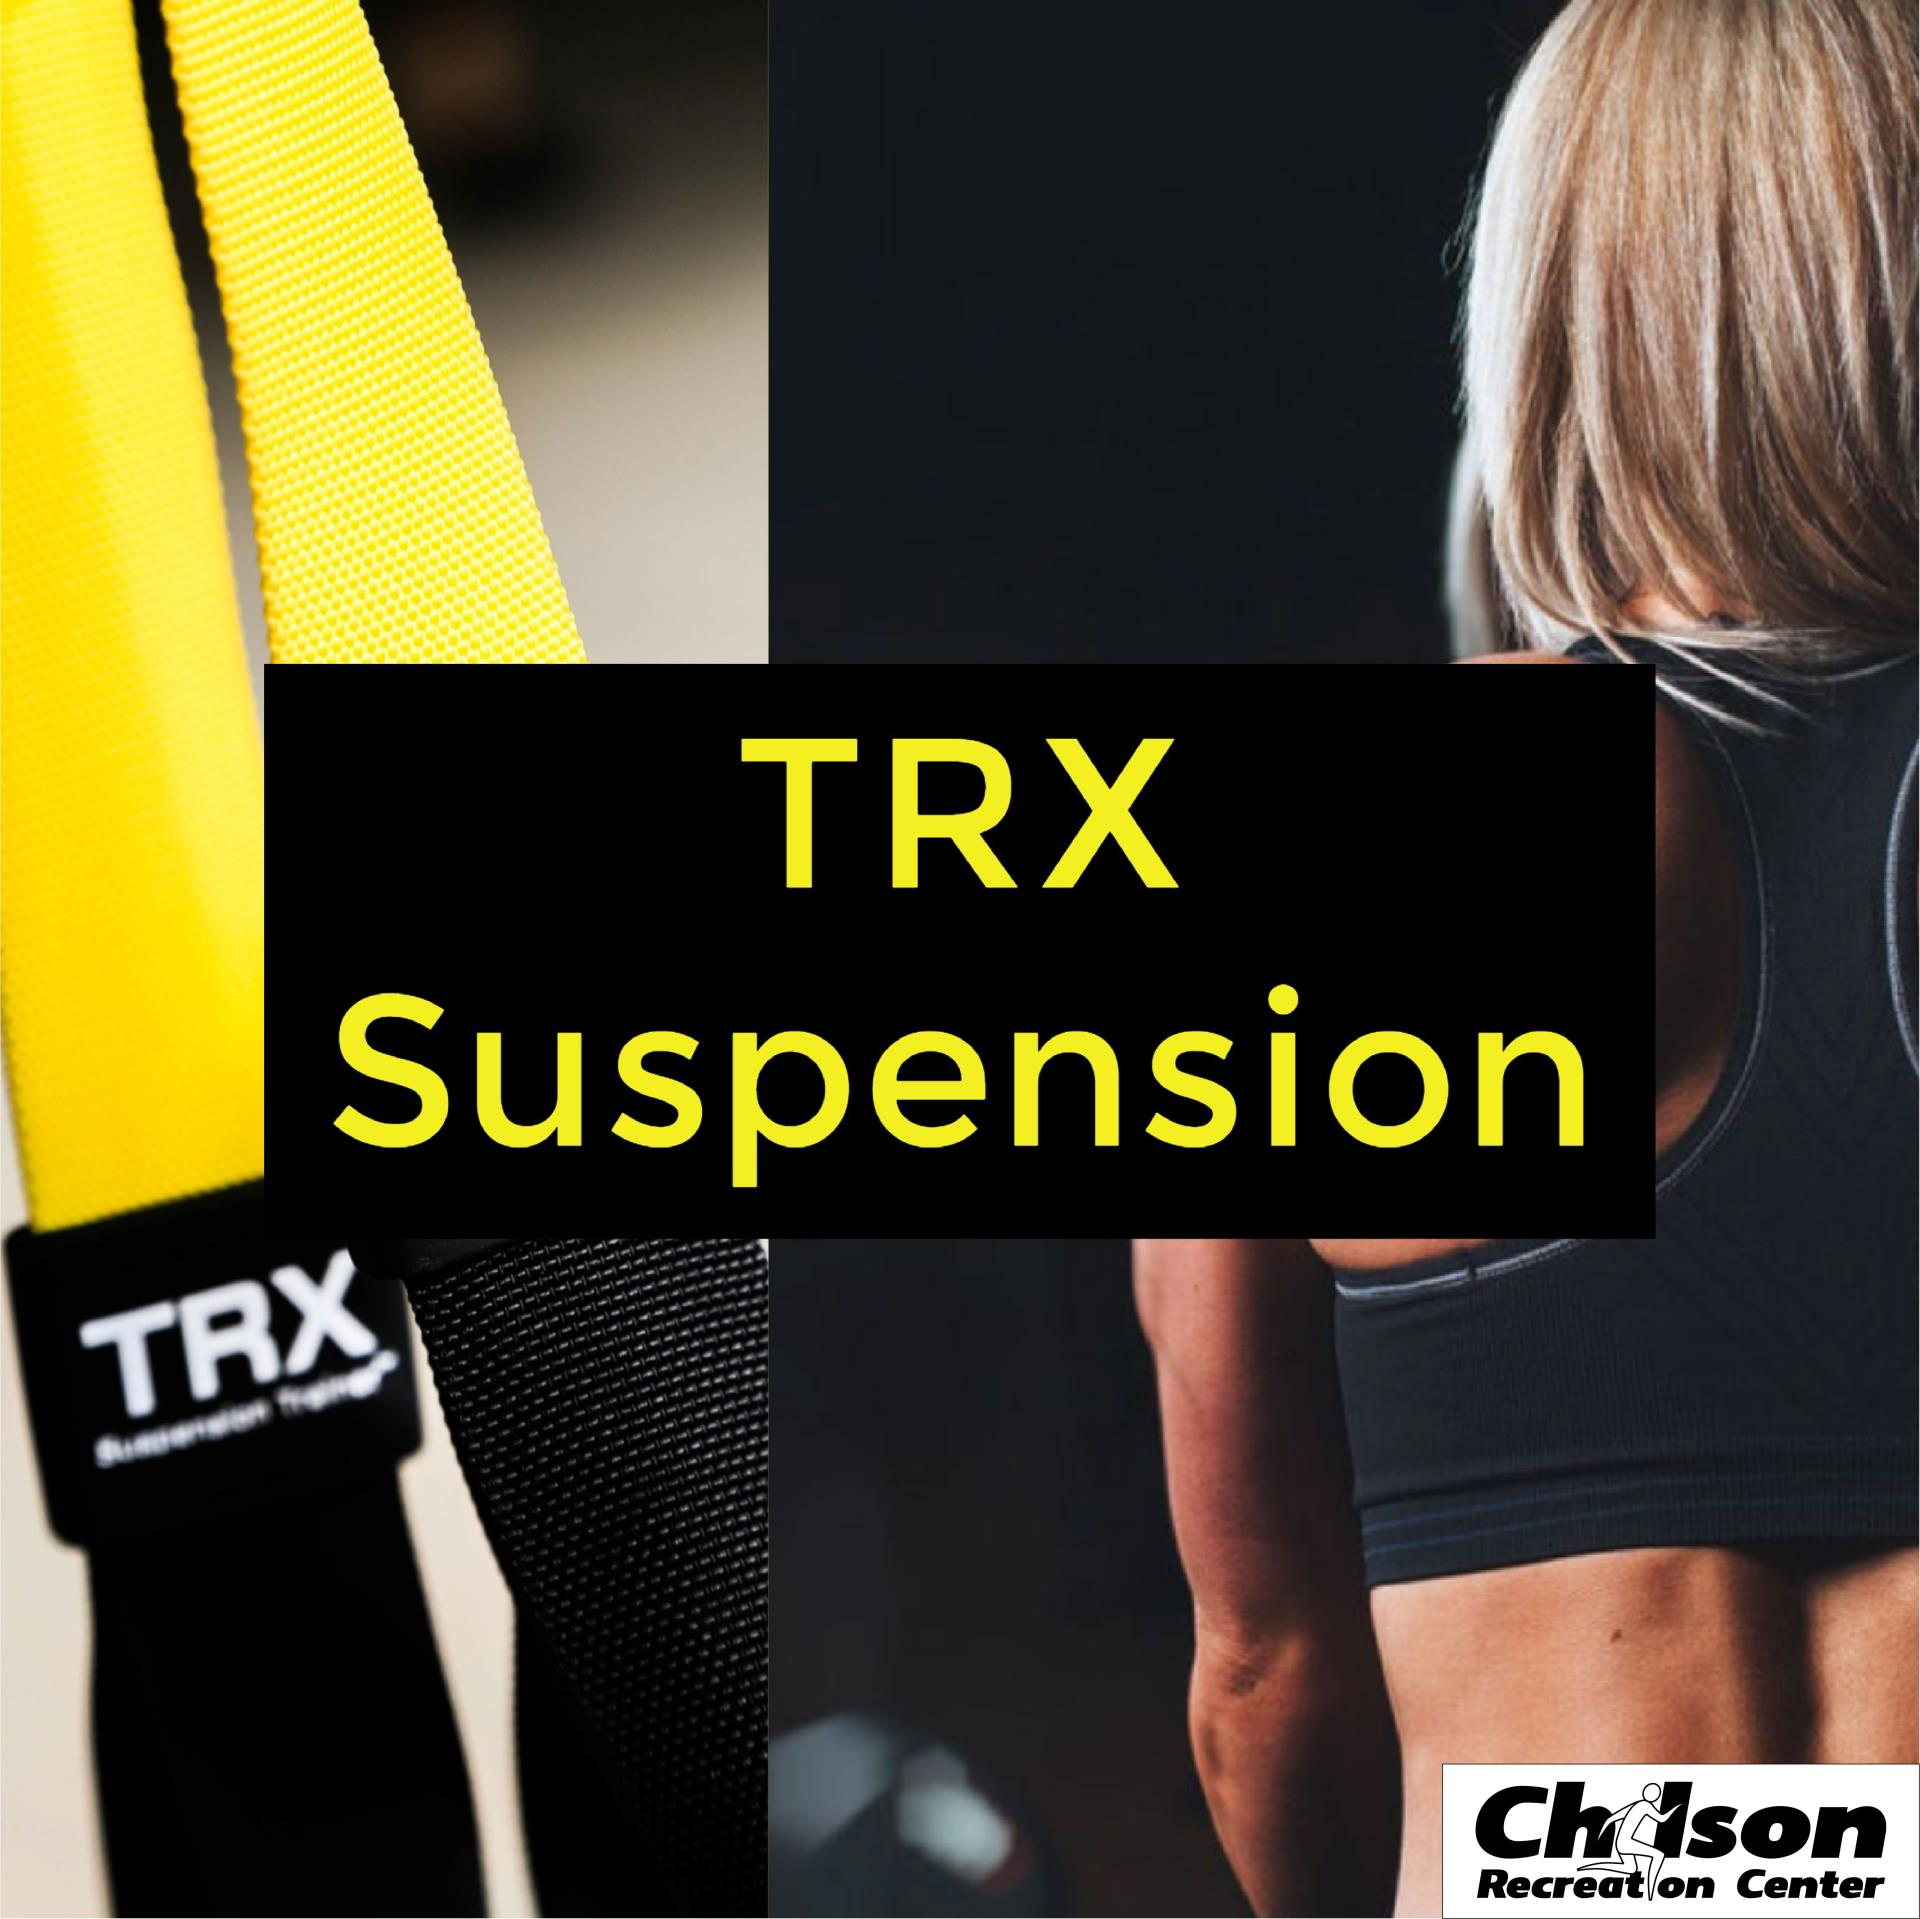 TRX classes at Chilson Recreation Center